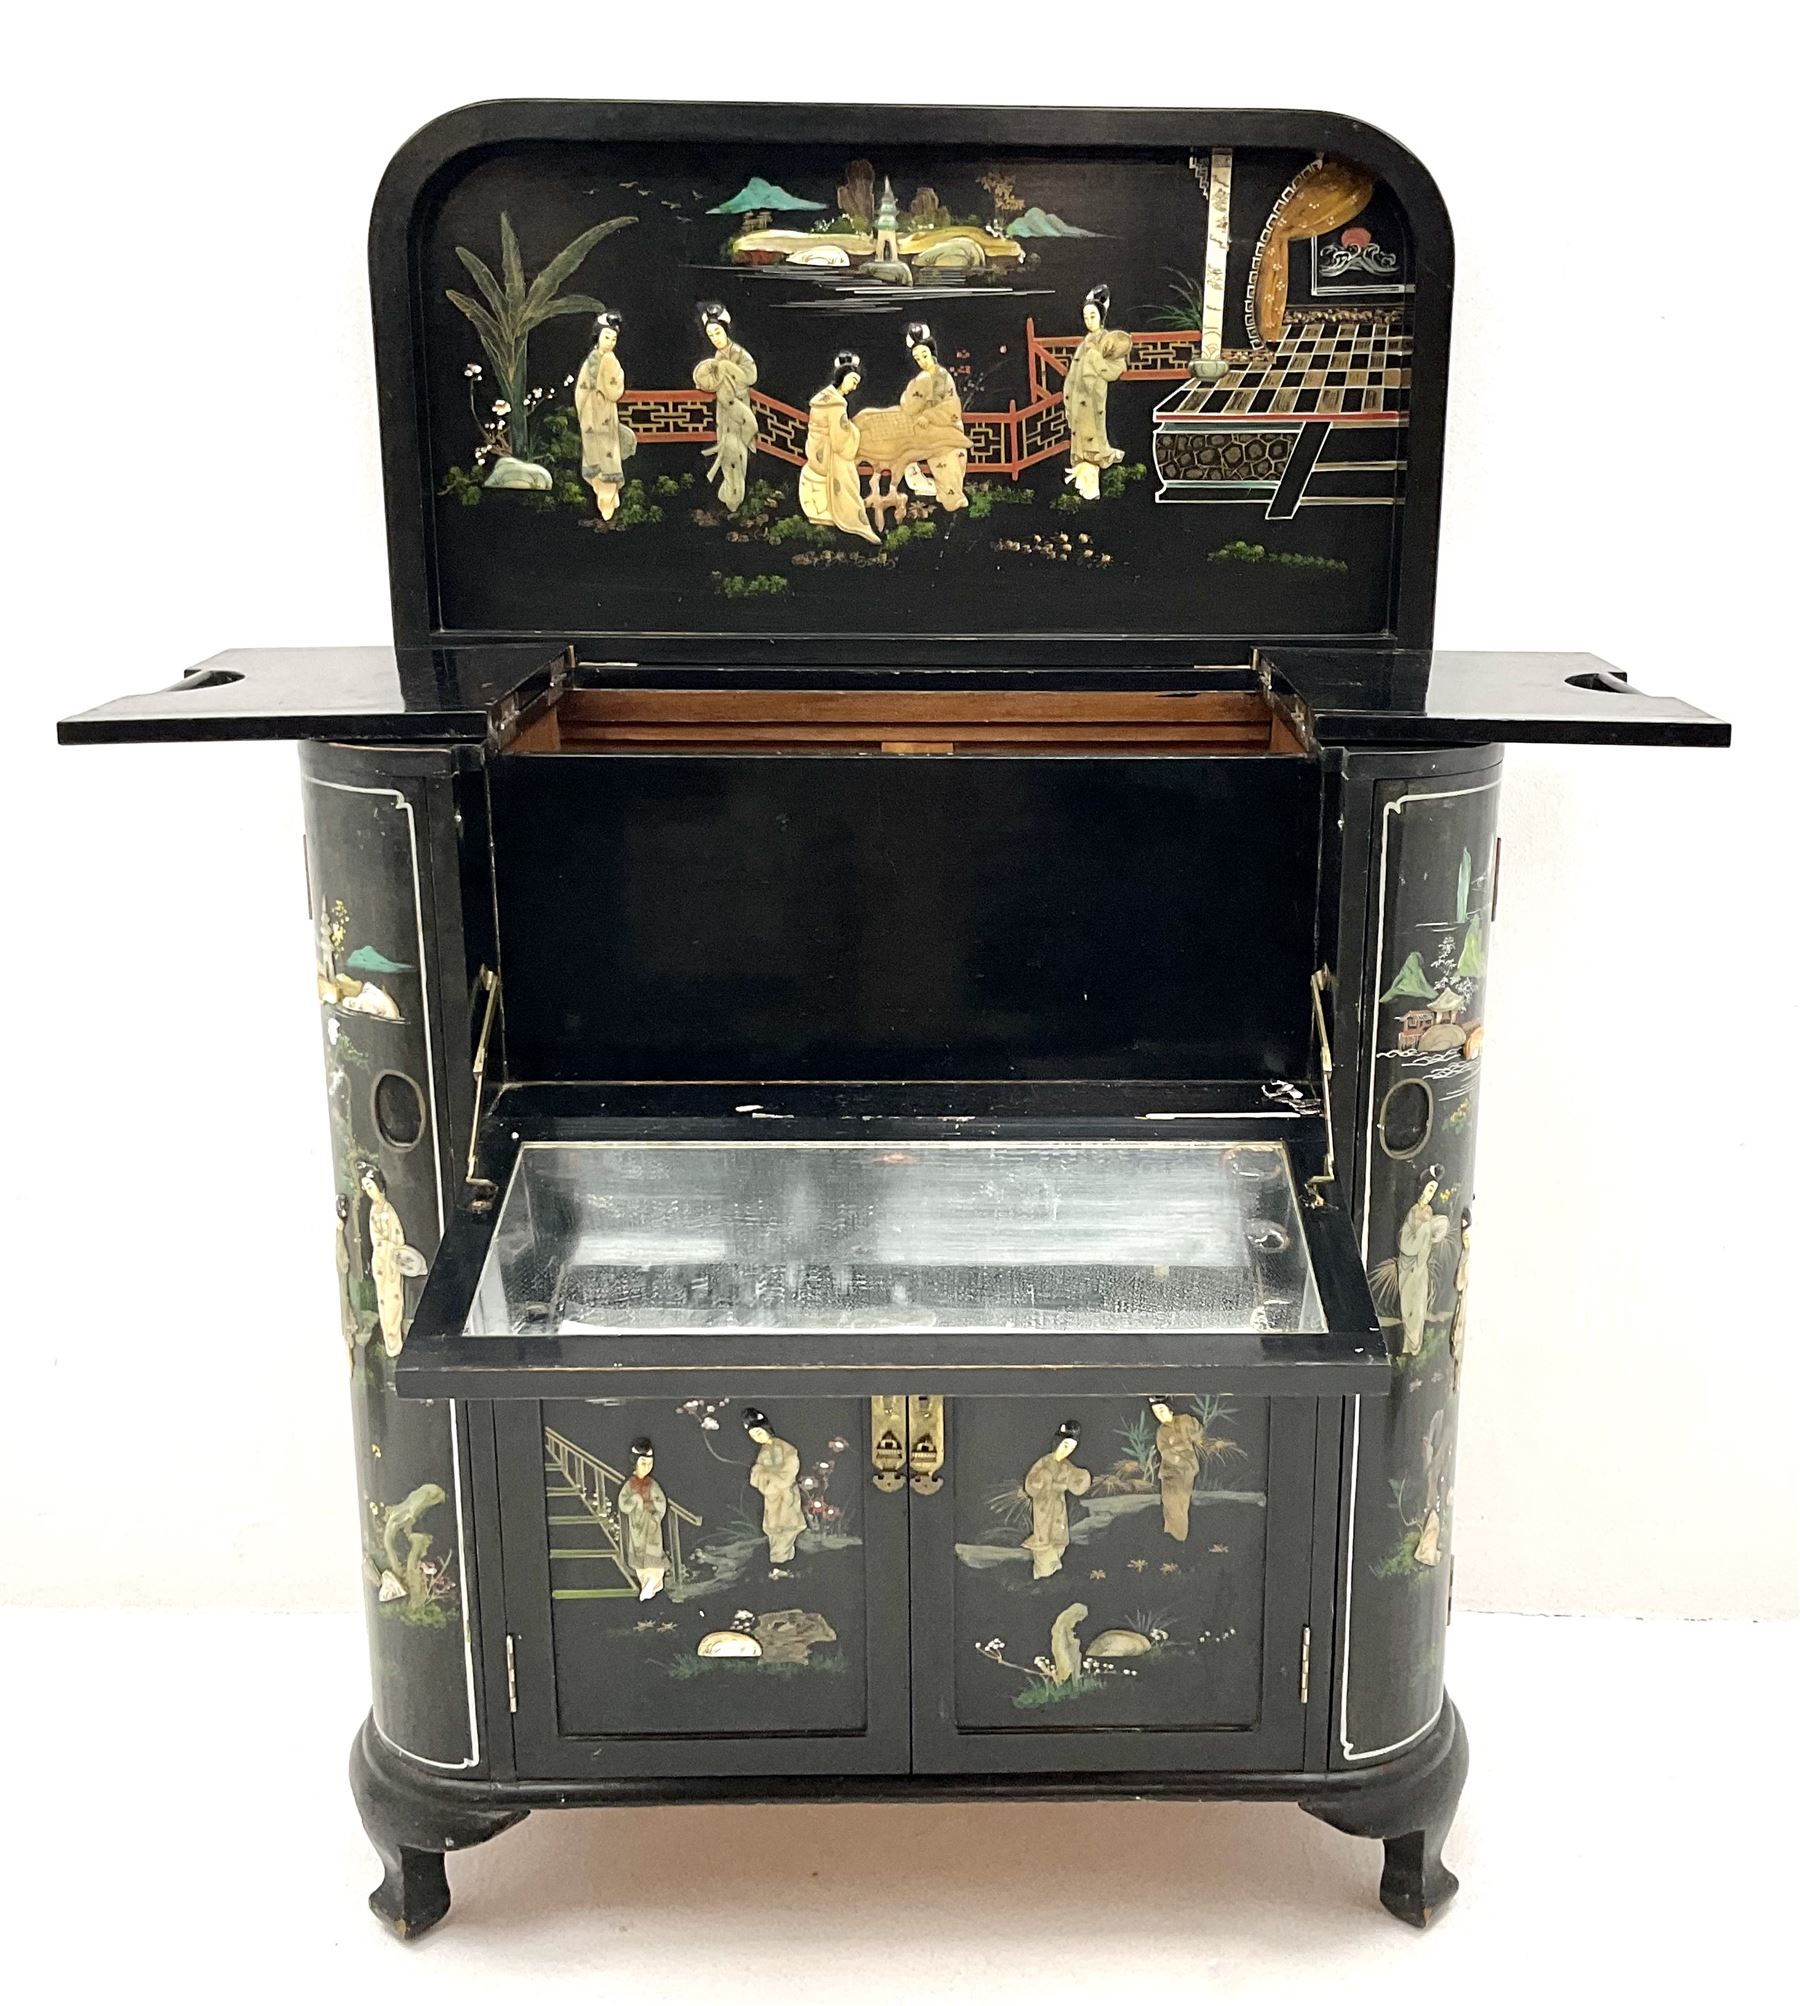 Hong Kong black lacquered cocktail cabinet with shibiyama style decoration of figures in a garden - Image 4 of 6